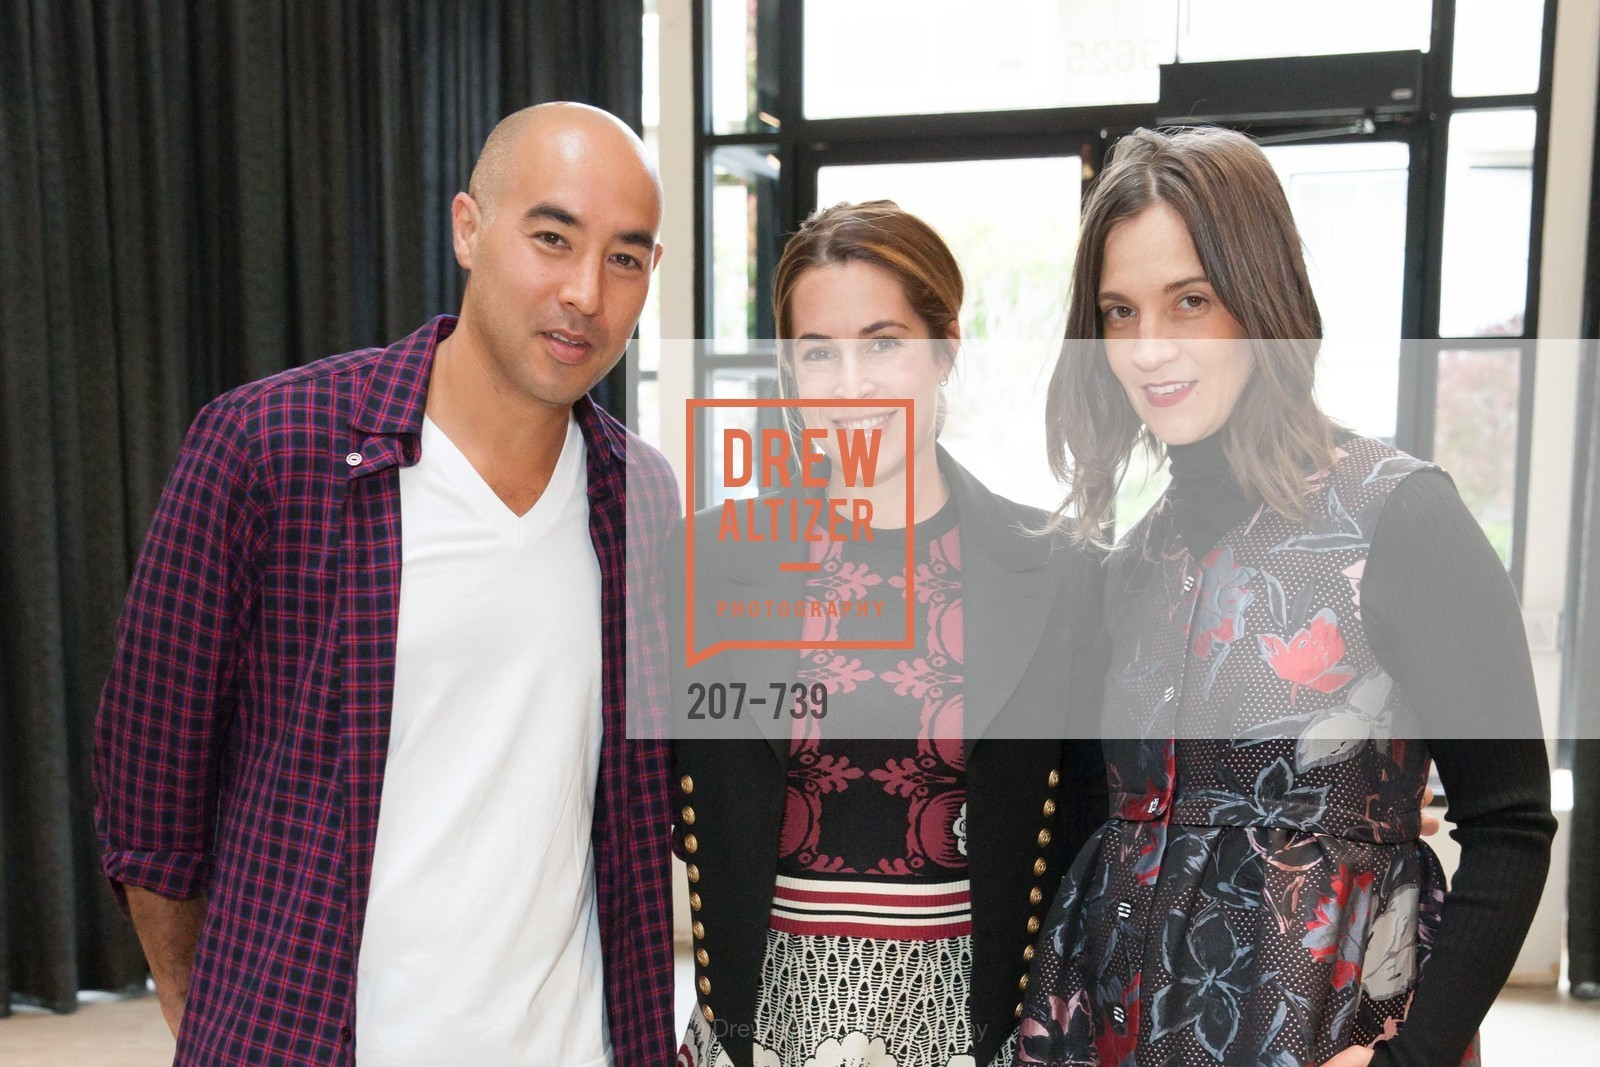 Max Osterweis, Ali Pincus, Erin Beatty, BETTY LIN Store Opening - VIPS, US, May 20th, 2015,Drew Altizer, Drew Altizer Photography, full-service agency, private events, San Francisco photographer, photographer california